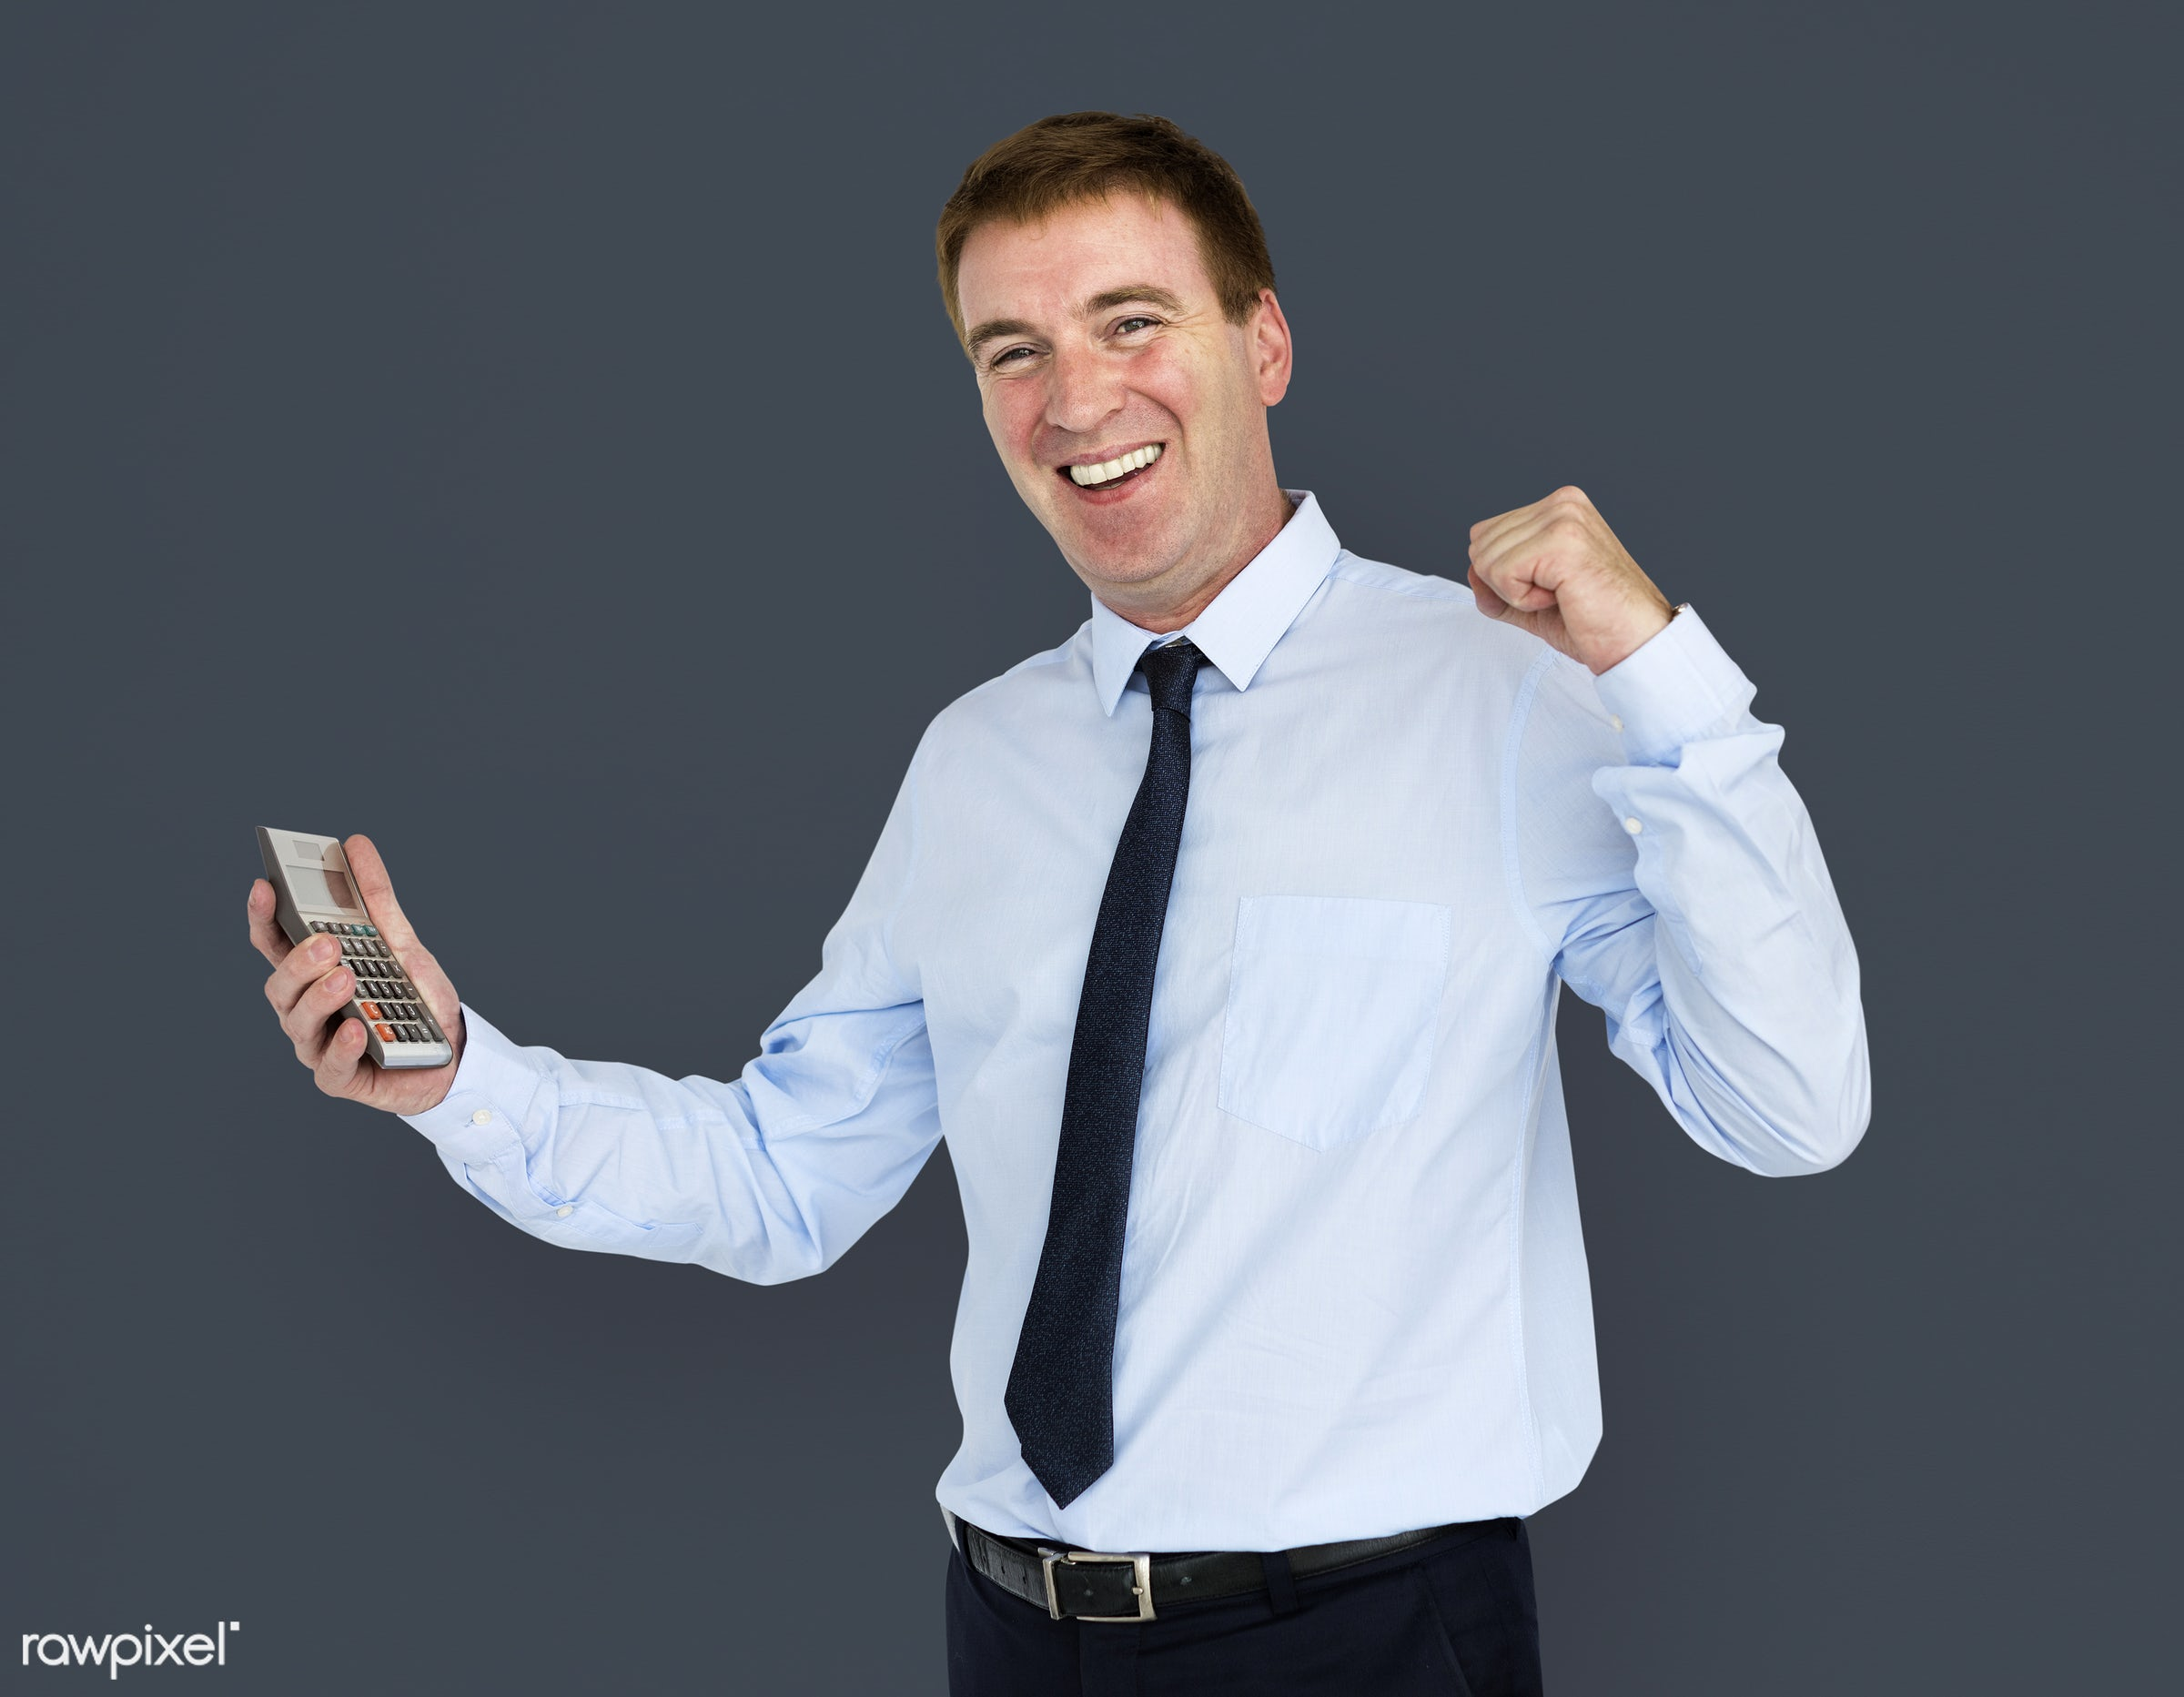 studio, expression, person, business wear, people, business, caucasian, achieved, happy, smile, positive, calculator,...